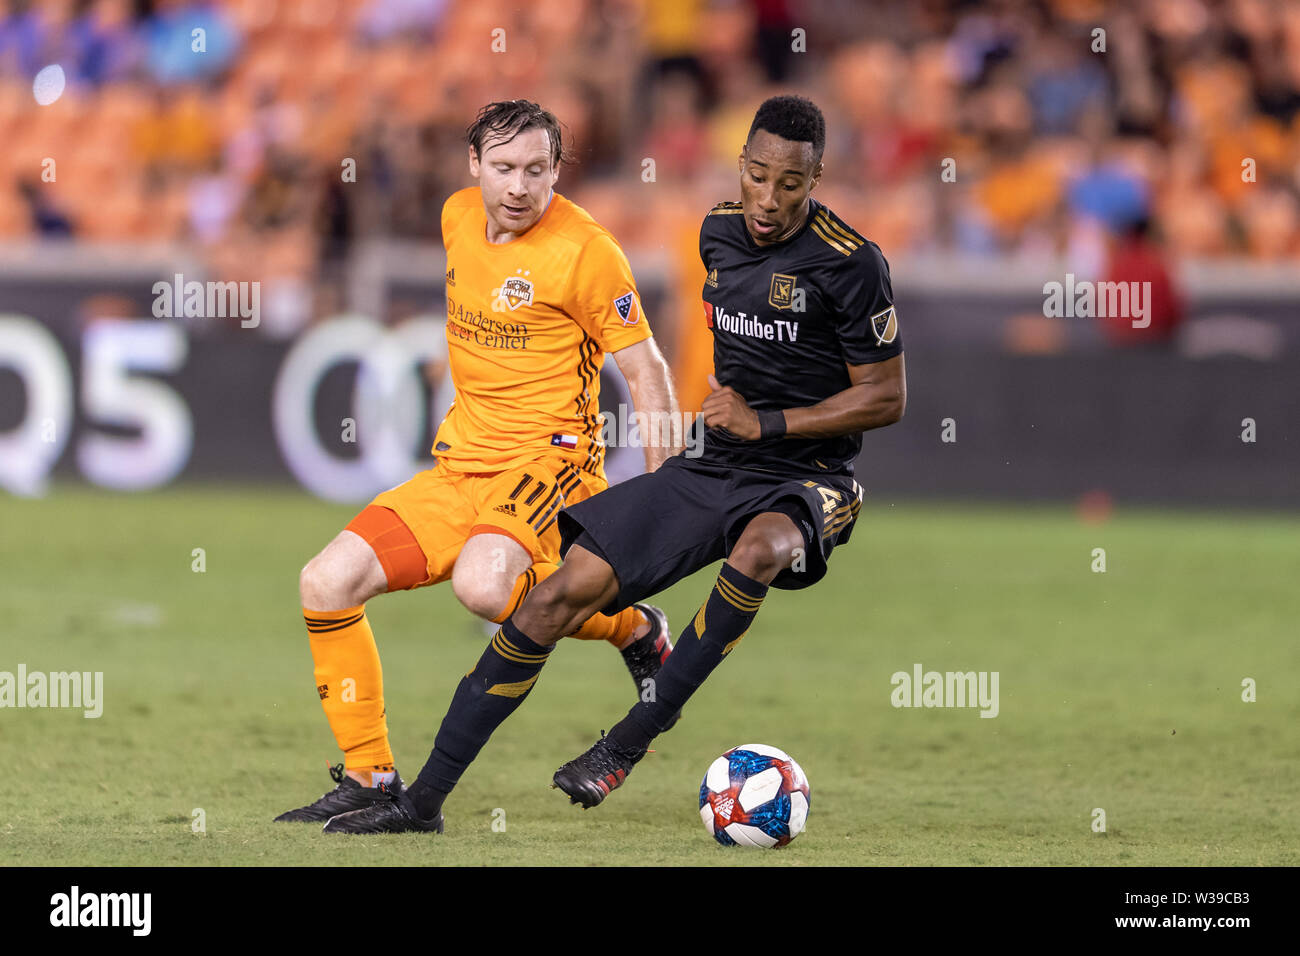 Houston, Texas, USA. 12th July, 2019. Los Angeles FC midfielder Mark-Anthony Kaye (14) and Houston Dynamo midfielder Thomas McNamara (11) during a match between Los Angeles FC and Houston Dynamo at BBVA Stadium in Houston, Texas. The final LAFC wins 3-1. Maria Lysaker/CSM/Alamy Live News - Stock Image